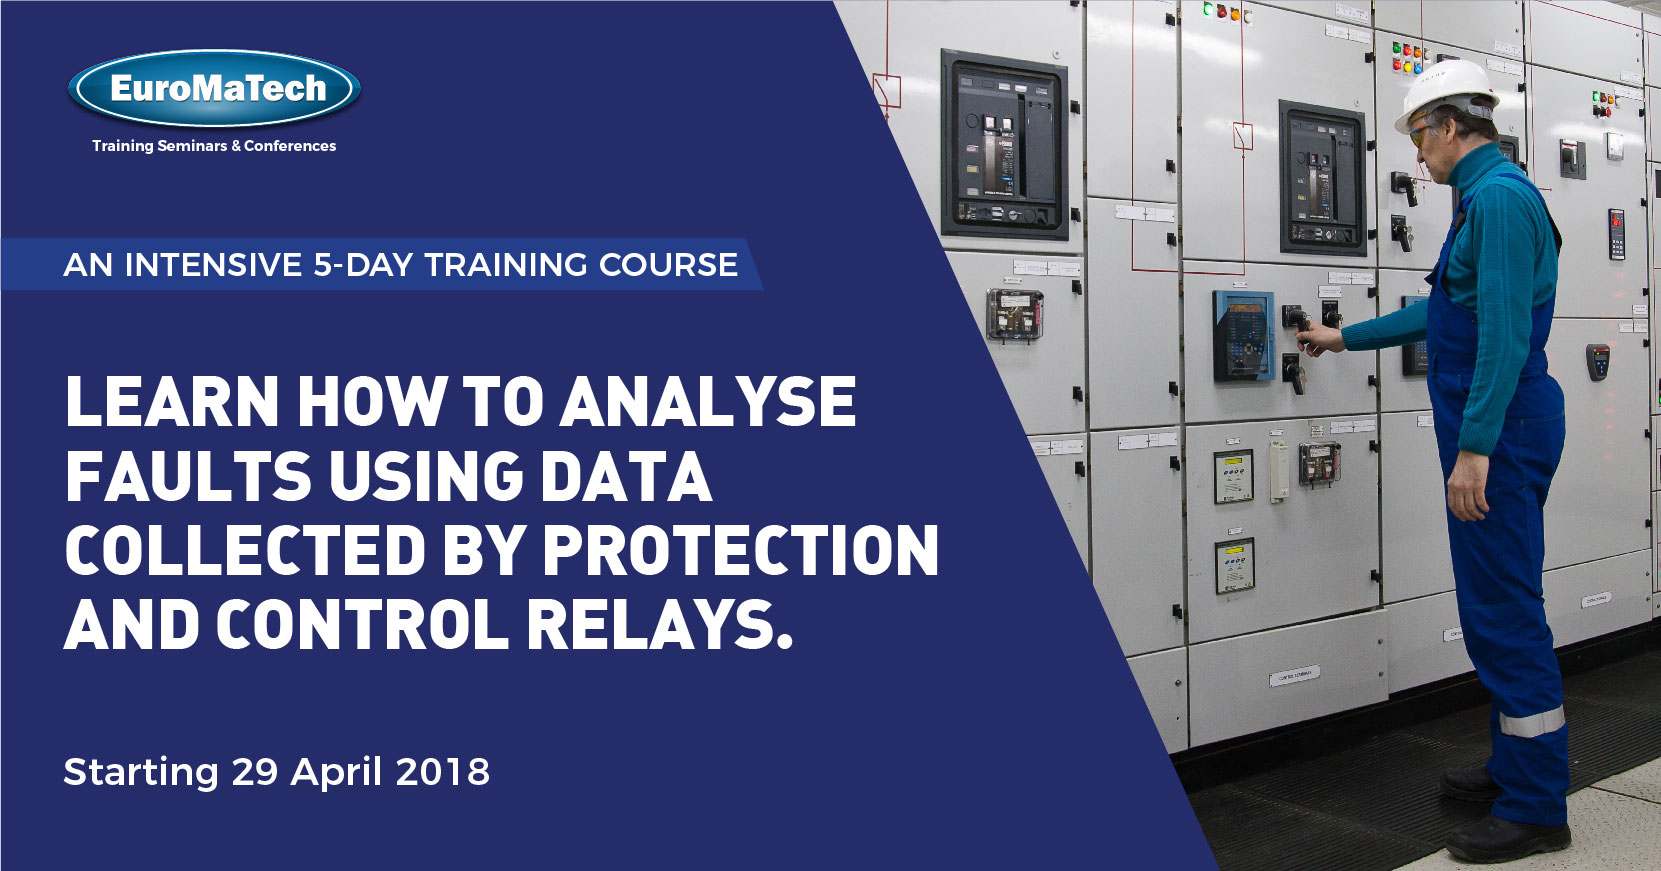 Protective Control Relay Systems and Automation Training